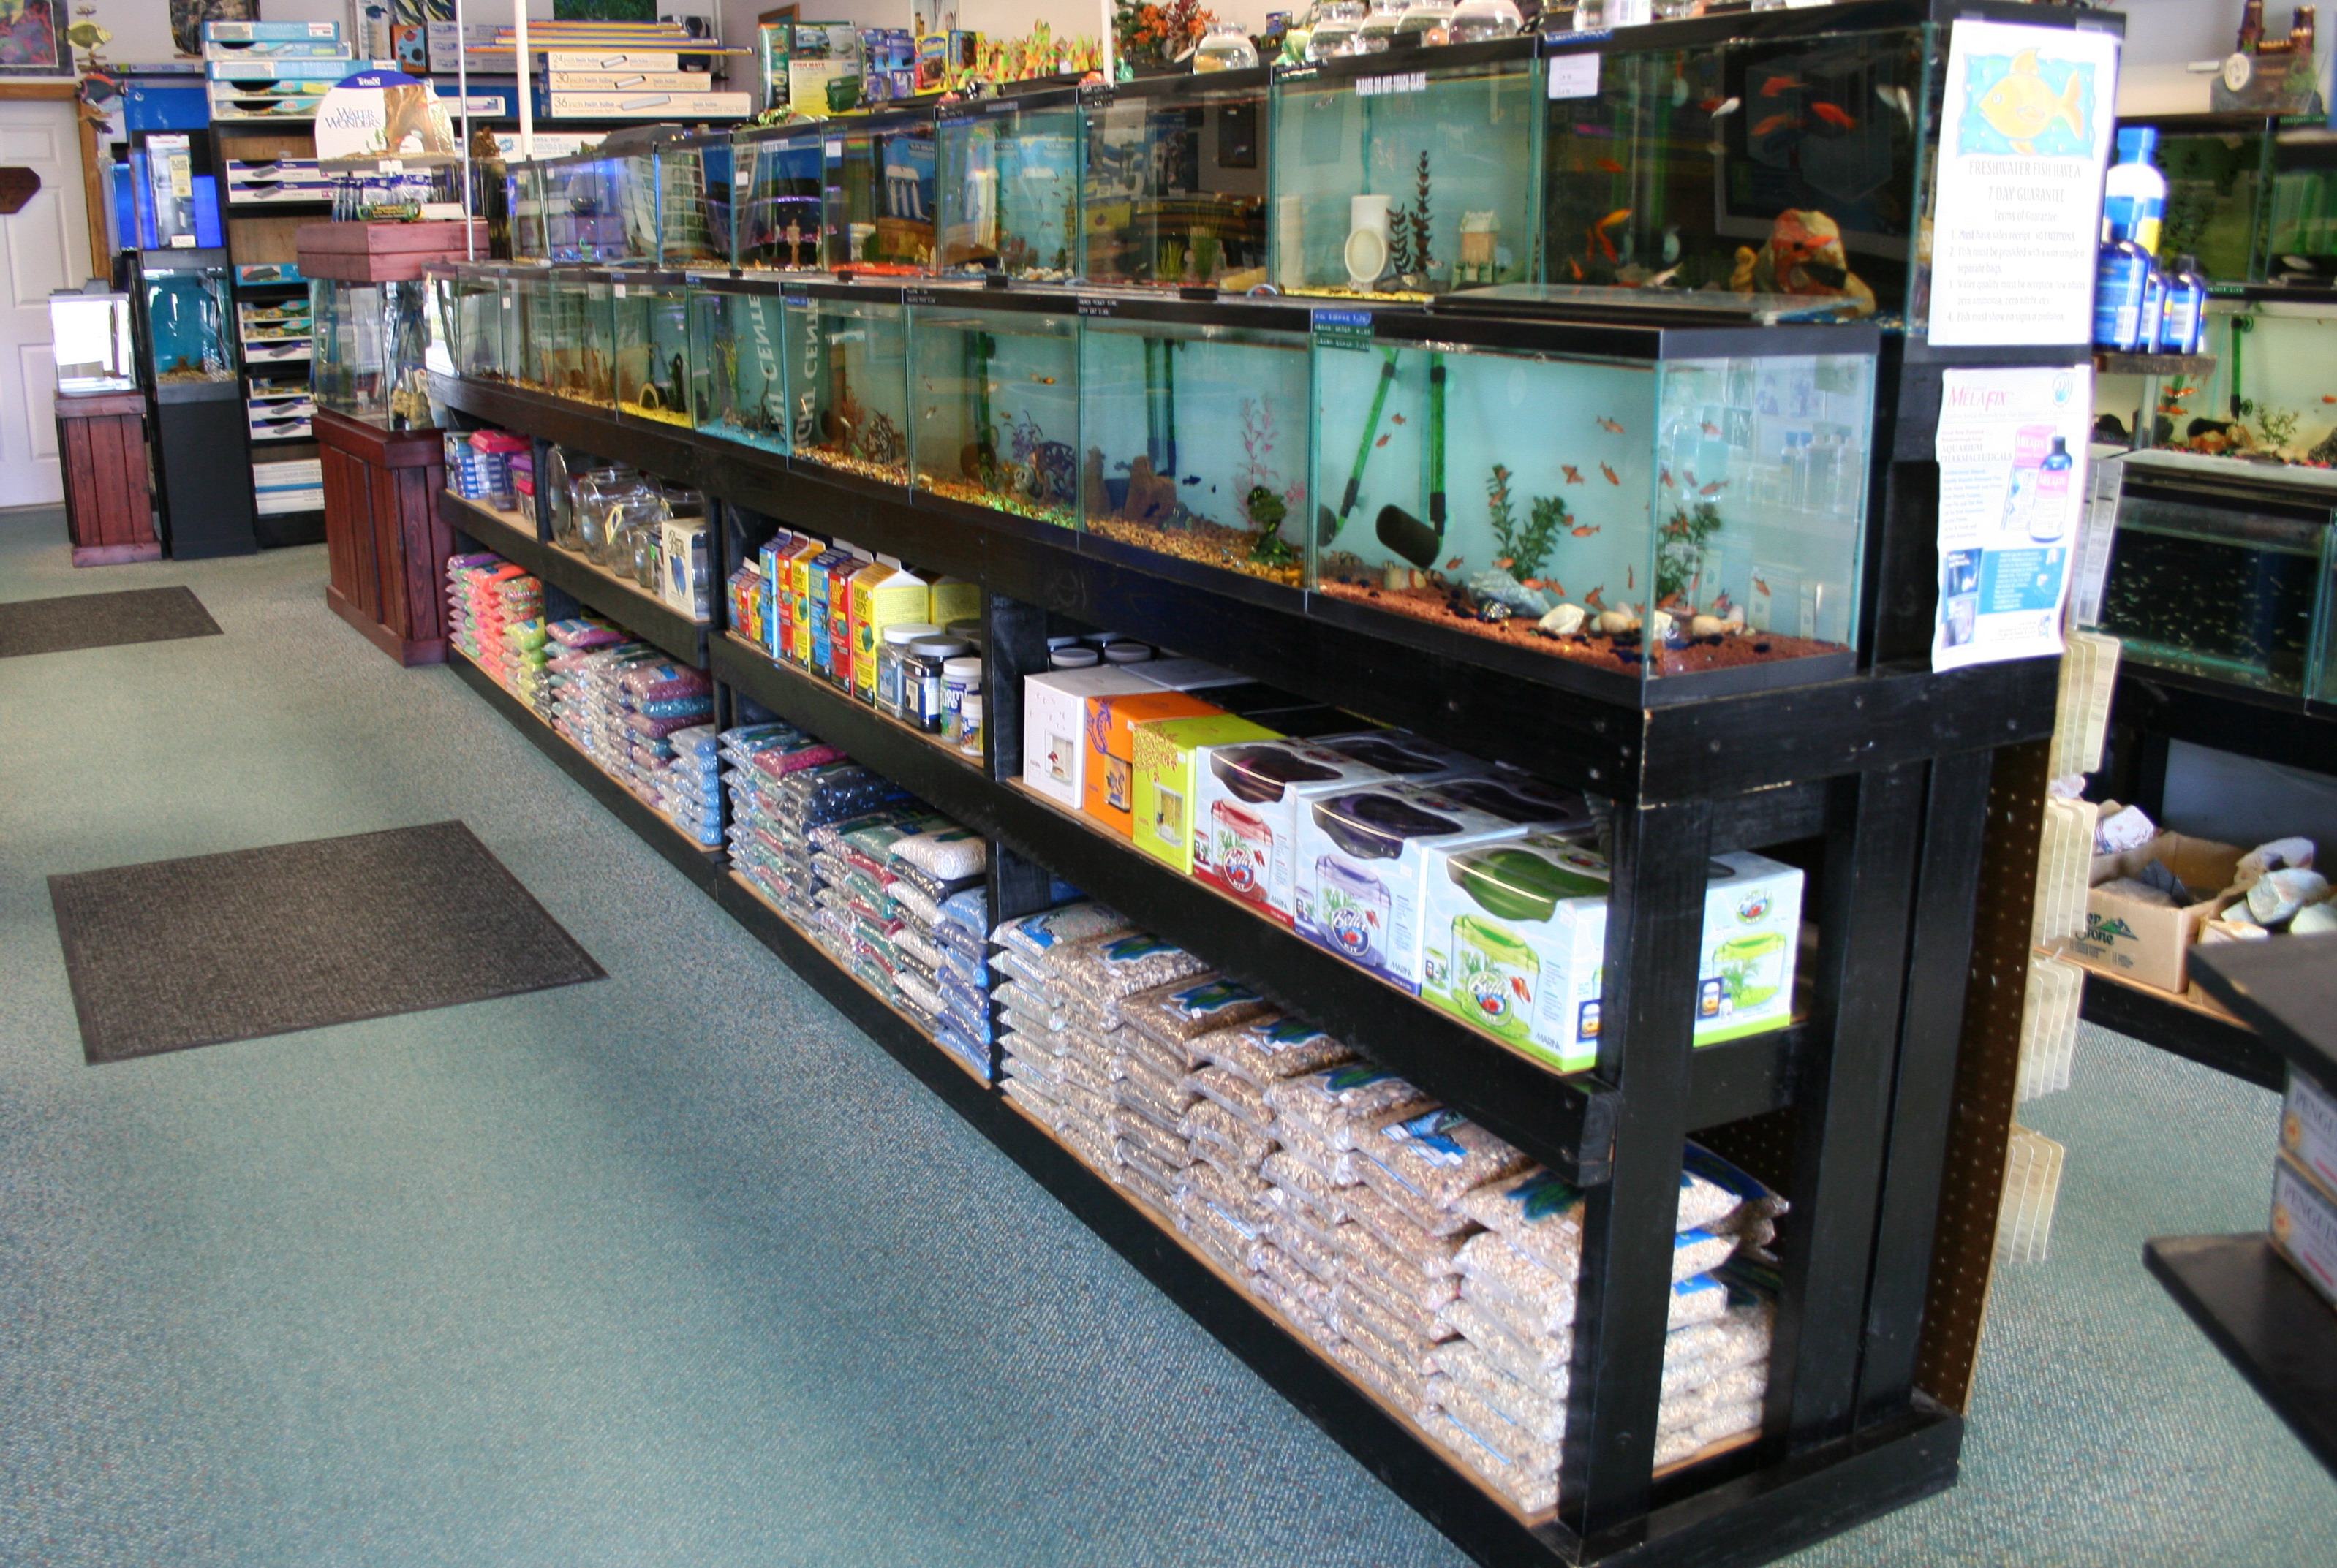 Freshwater aquarium fish jacksonville fl - Fish Cave We Gladly Accept Open 7 Days A Week Foryour Convenience Monday Tuesday 10 30 A M 7 00 P M Wednesday Saturday10 30 8 00 Sunday 1 00